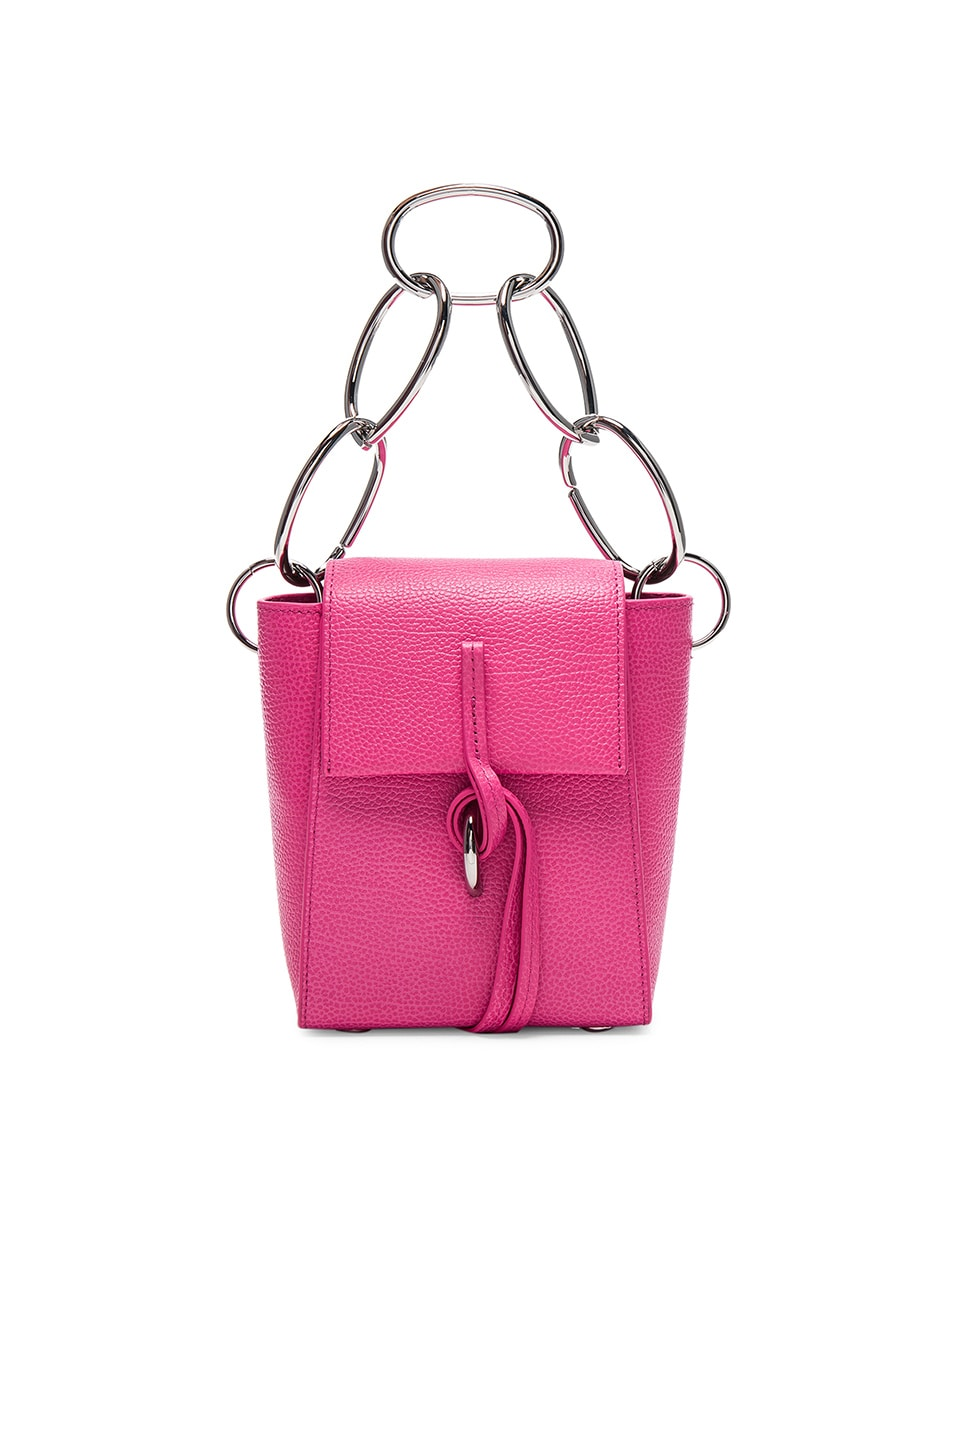 small Leigh crossbody bag - Pink & Purple 3.1 Phillip Lim Cheap Price Buy Discount Hot Sale For Sale Clearance Exclusive Shop Your Own woj1o